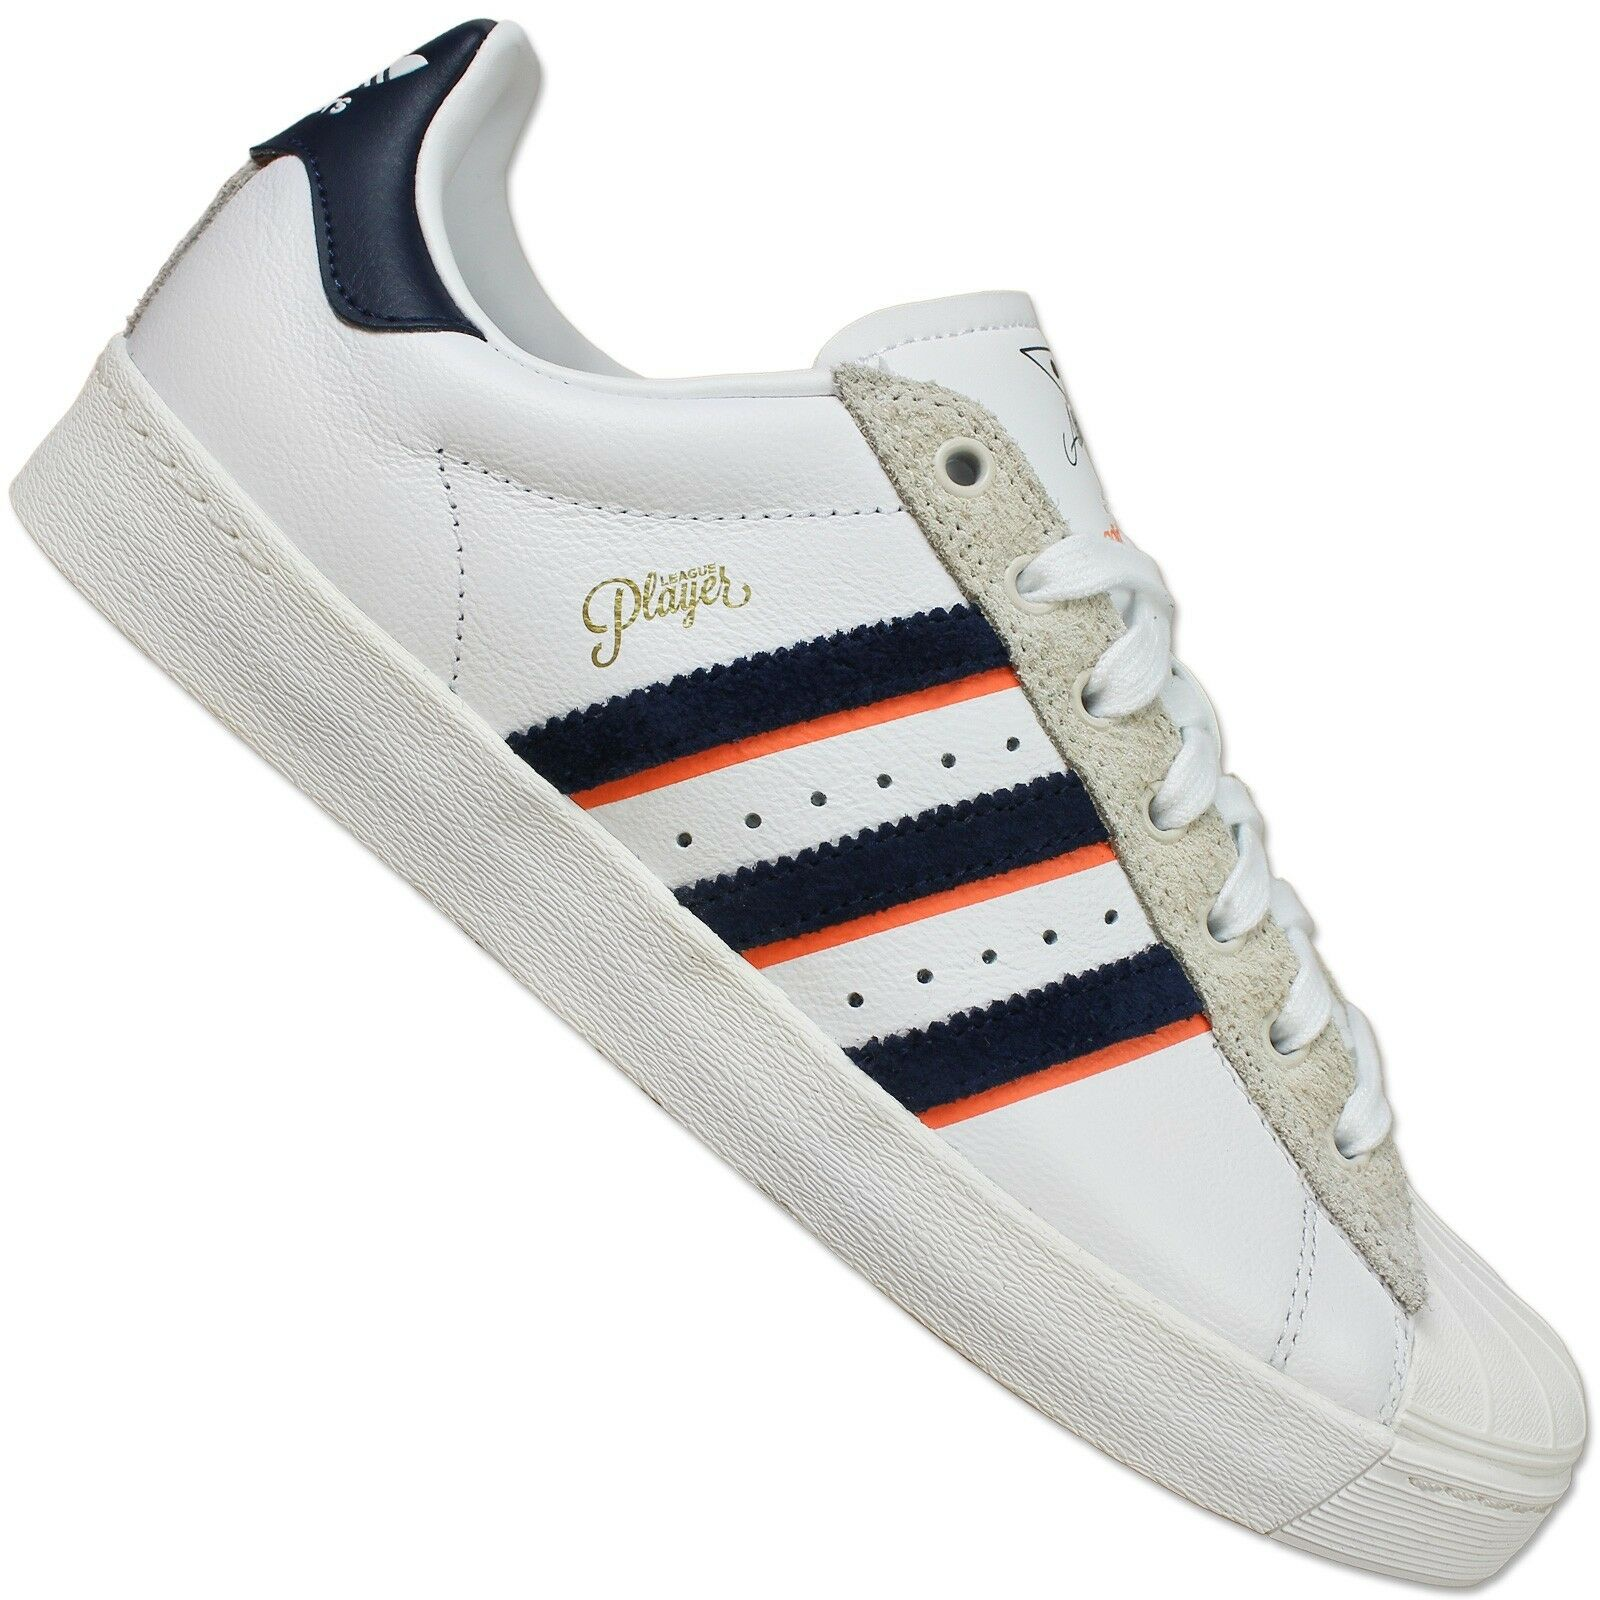 ADIDAS ORIGINALS SUPERSTAR II ALL TIMERS LEAGUE PLAYER SCHUH WEISS 37 1 3 UK 4.5